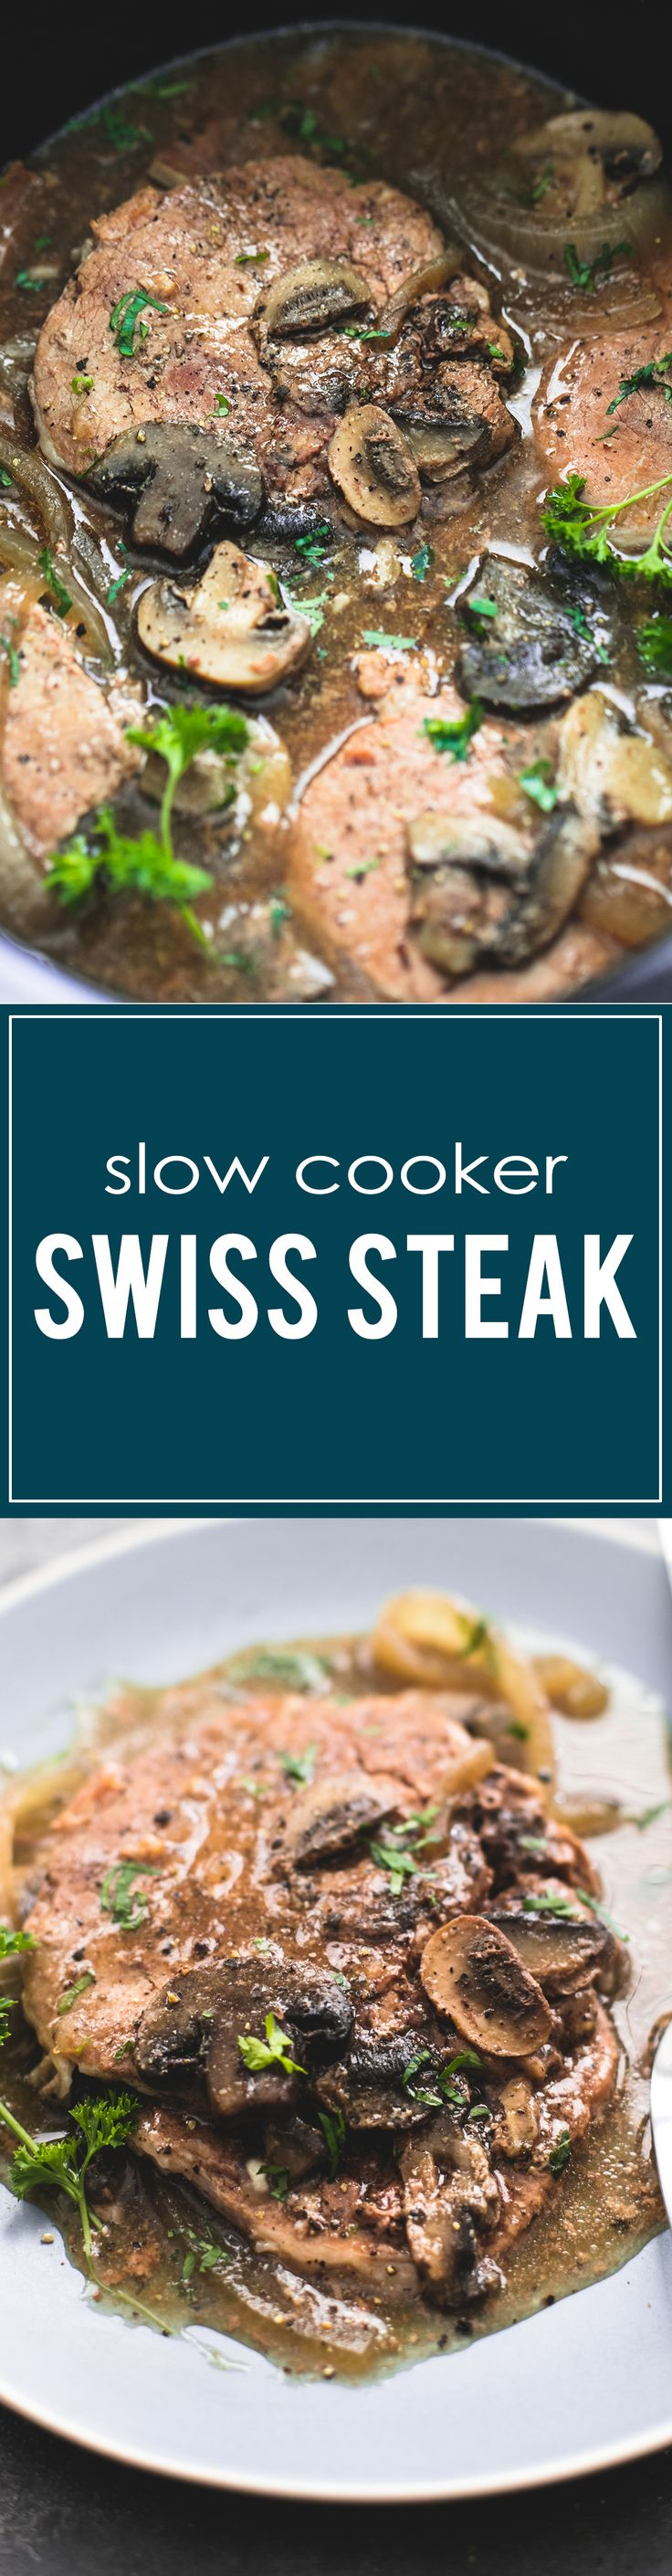 Slow Cooker Swiss Steak | lecremedelacrumb.com